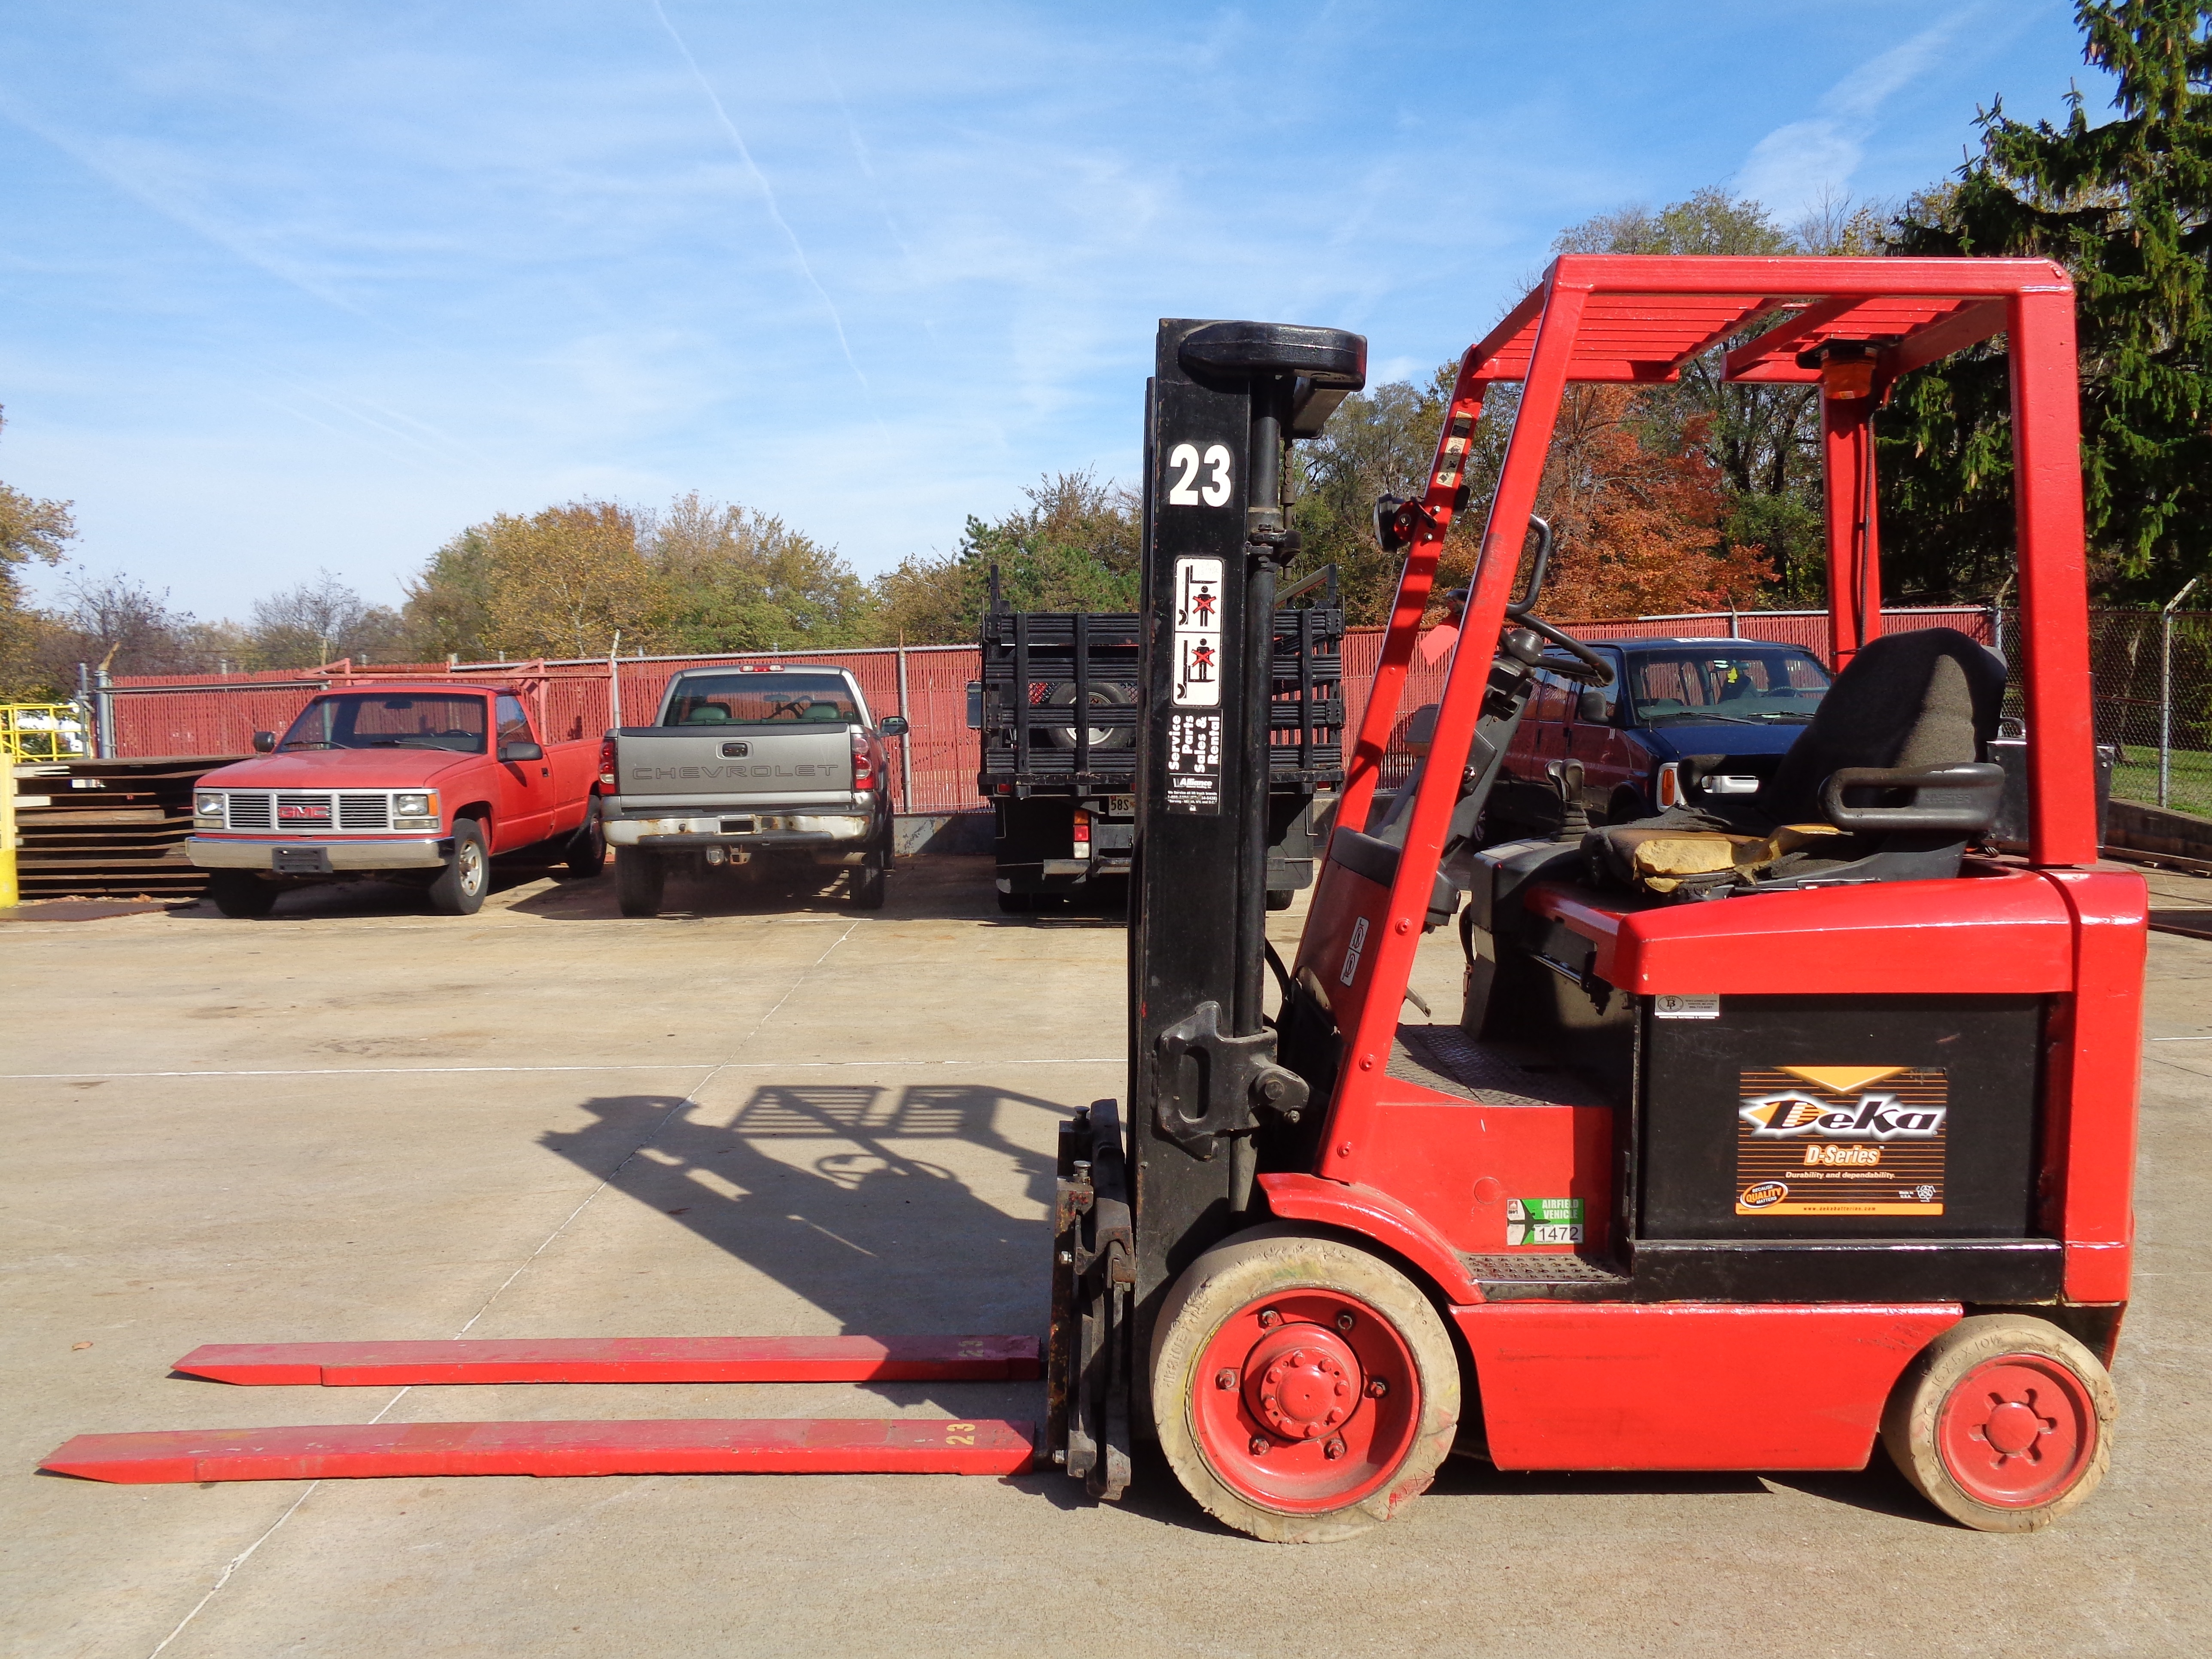 1999 Hyster E50XM-27 Forklift - 5,000 lbs